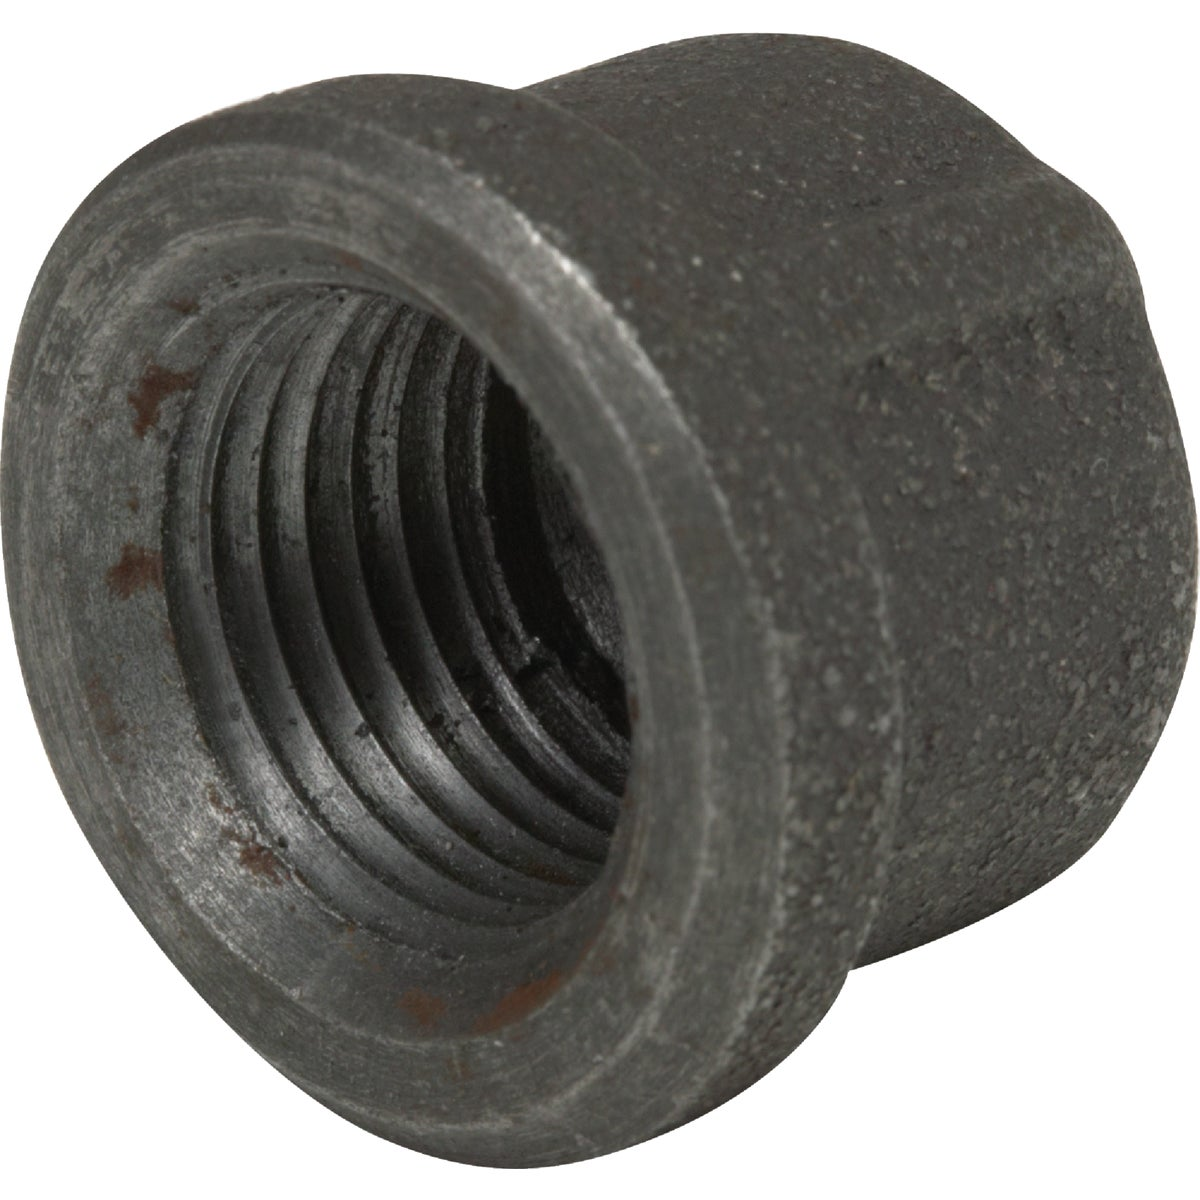 "1/4"" BLK CAP - 8700132106 by Anvil International"